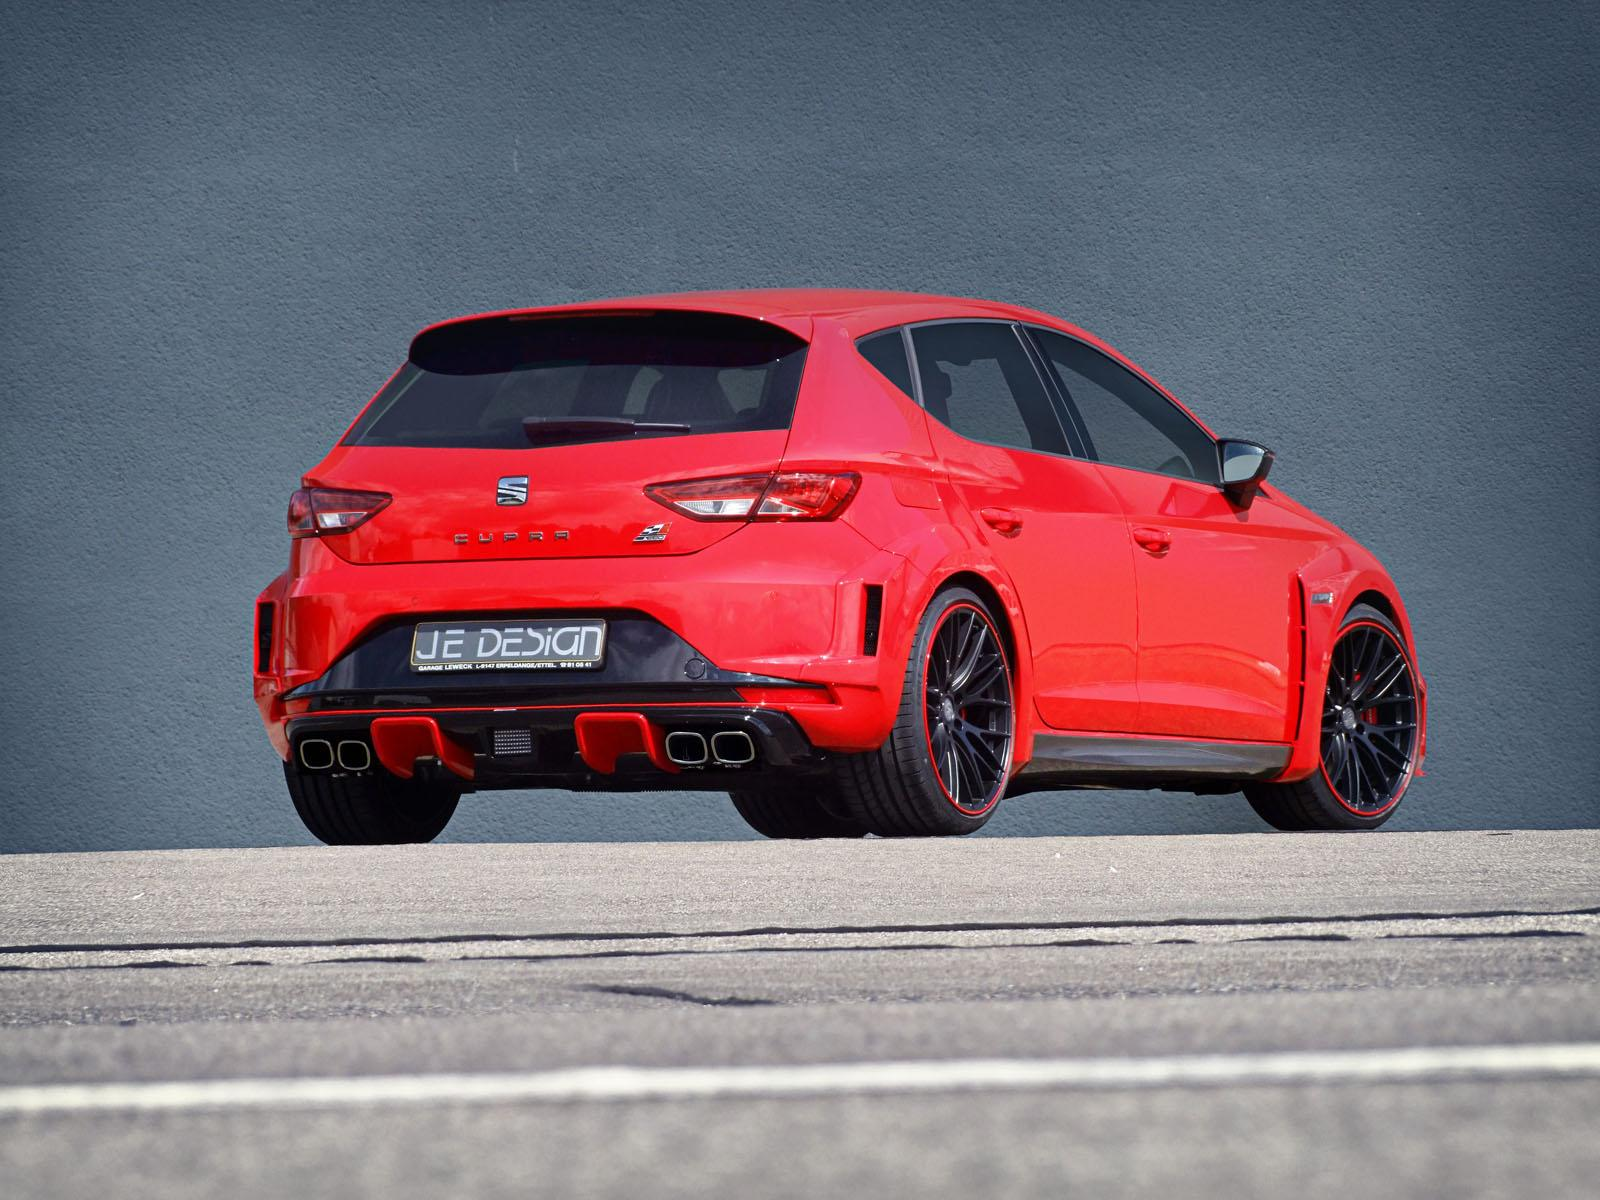 seat leon cupra gets widebody kit from je design. Black Bedroom Furniture Sets. Home Design Ideas